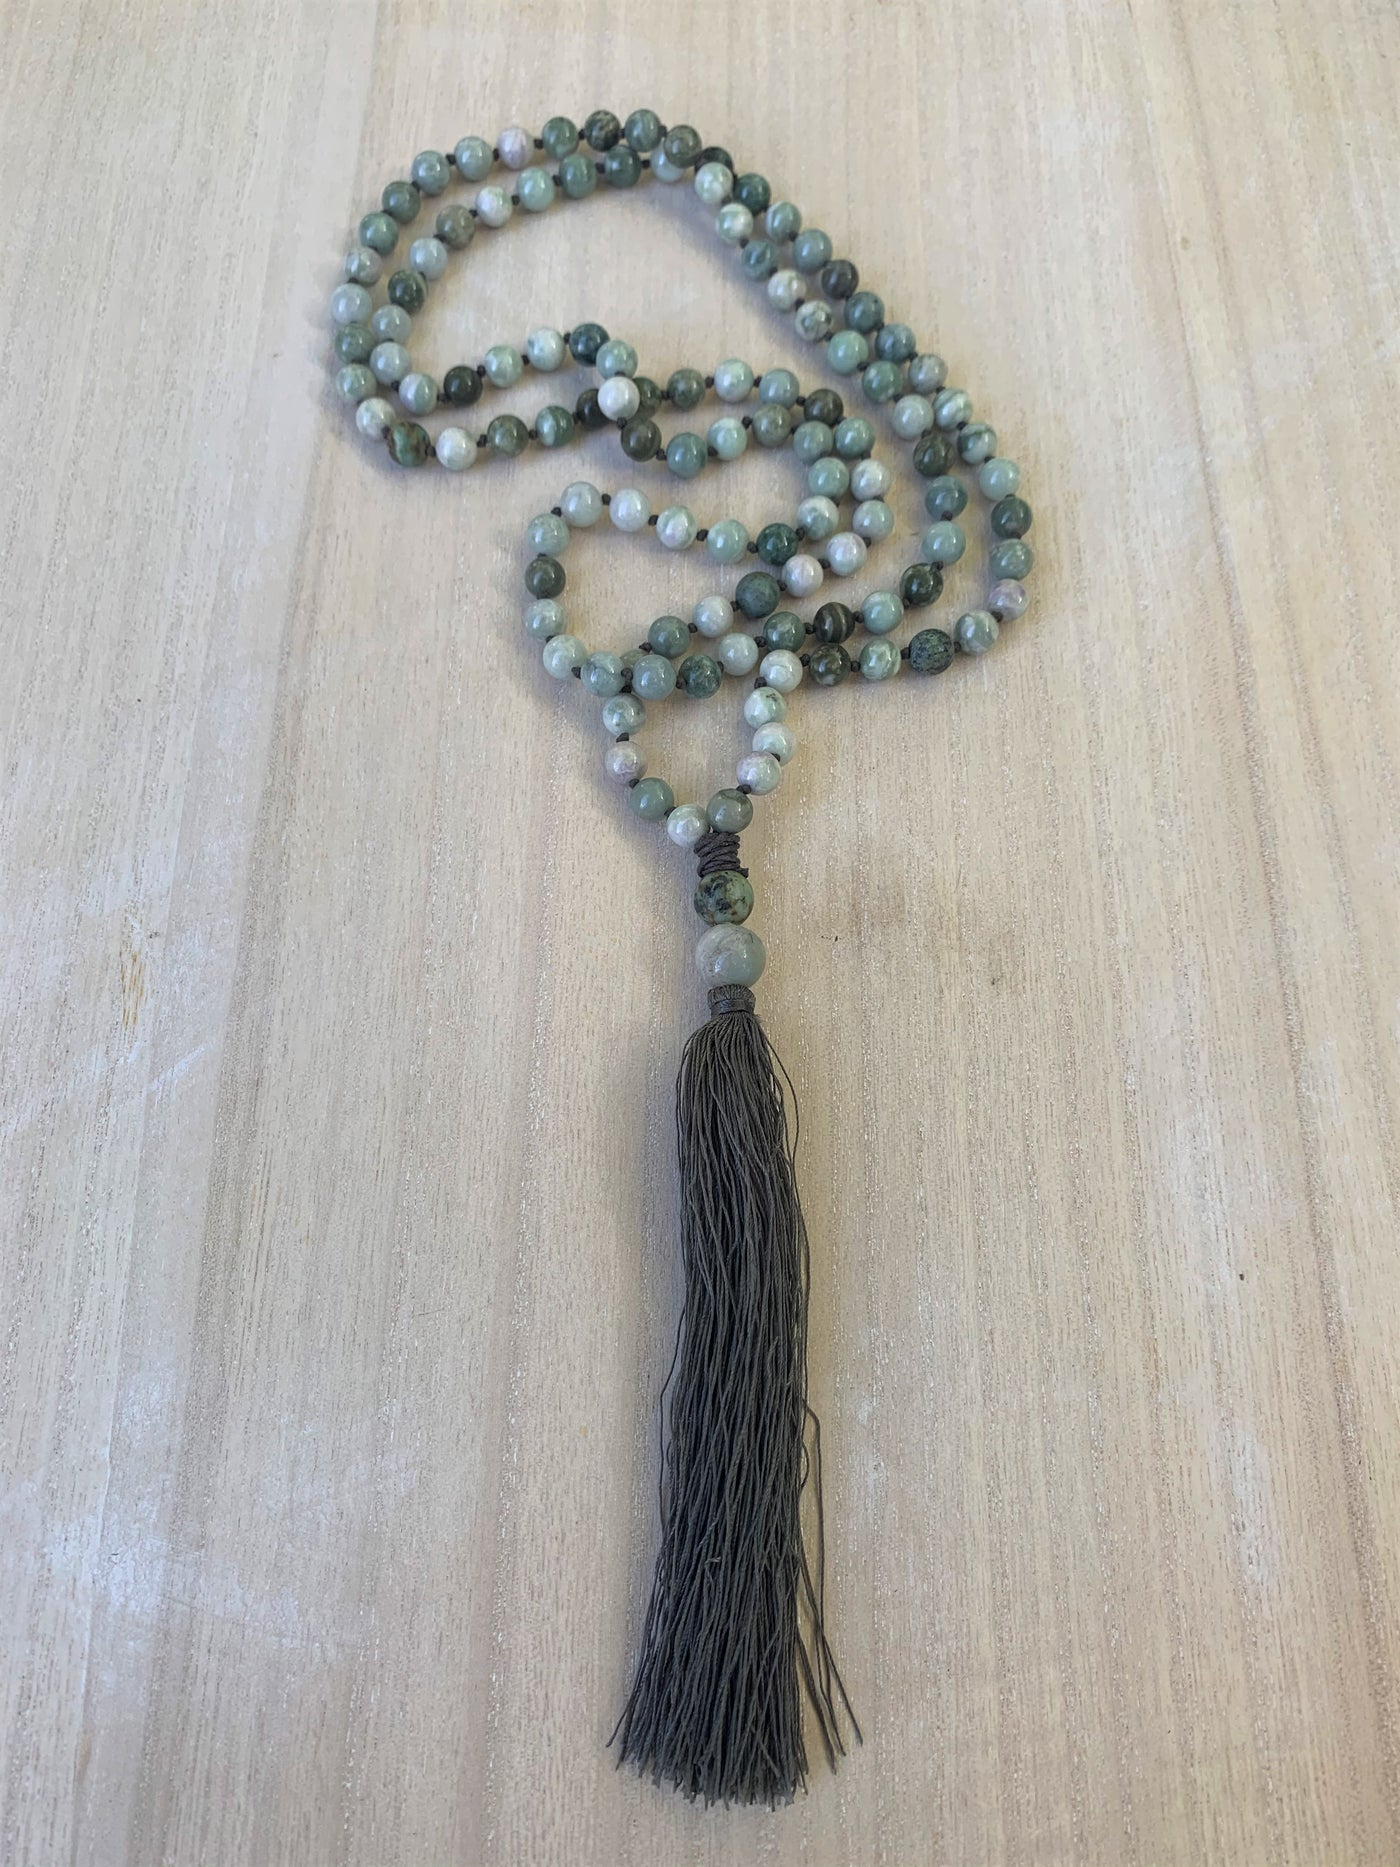 Burma Jade, Matte African Turquoise Knotted Mala Necklace